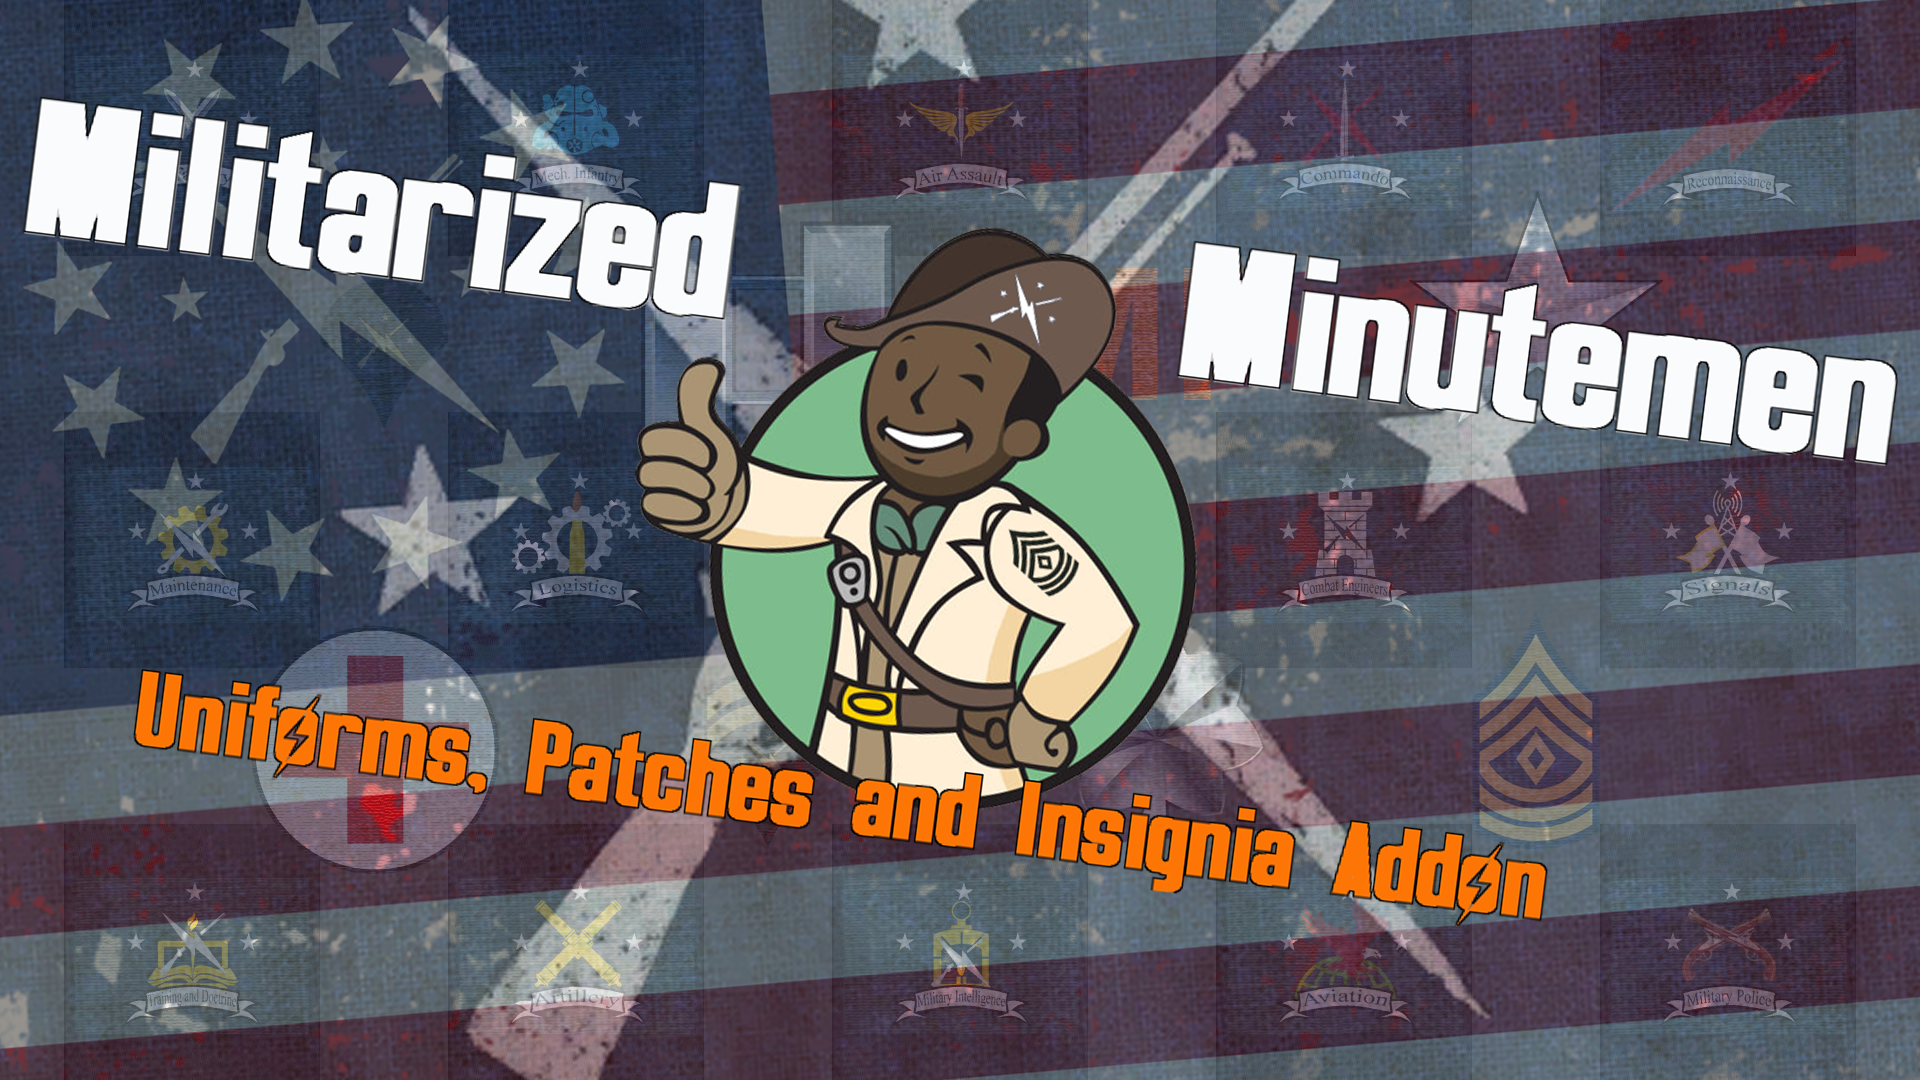 Militarized Minutemen - Uniforms Patches